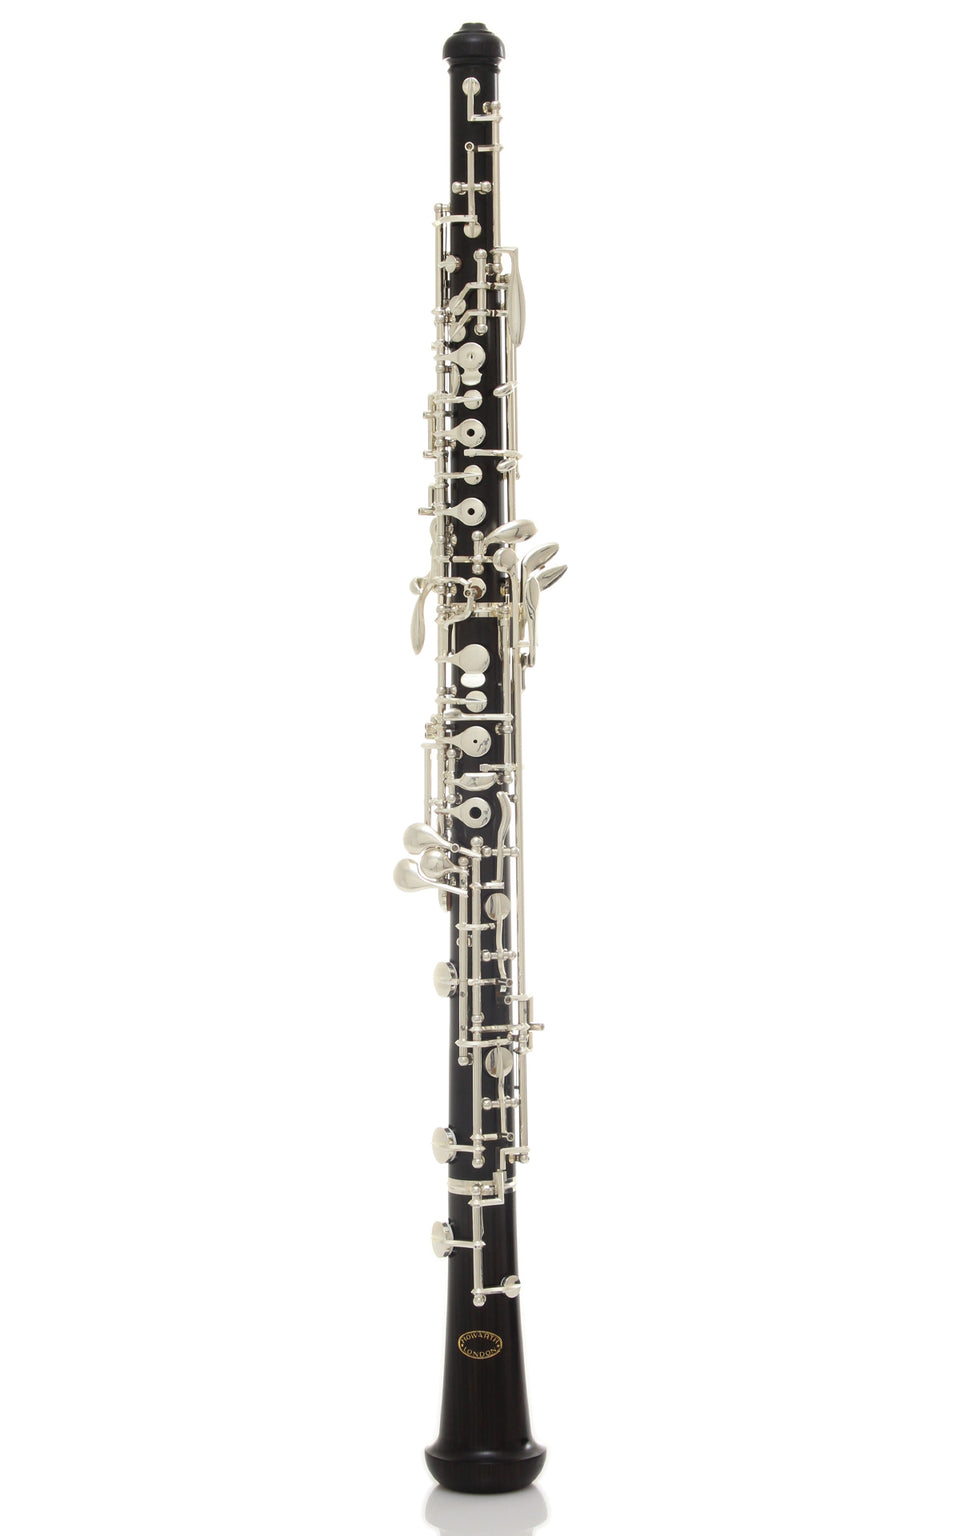 Howarth S40C Conservatoire (French) System Oboe With 3rd Octave Key